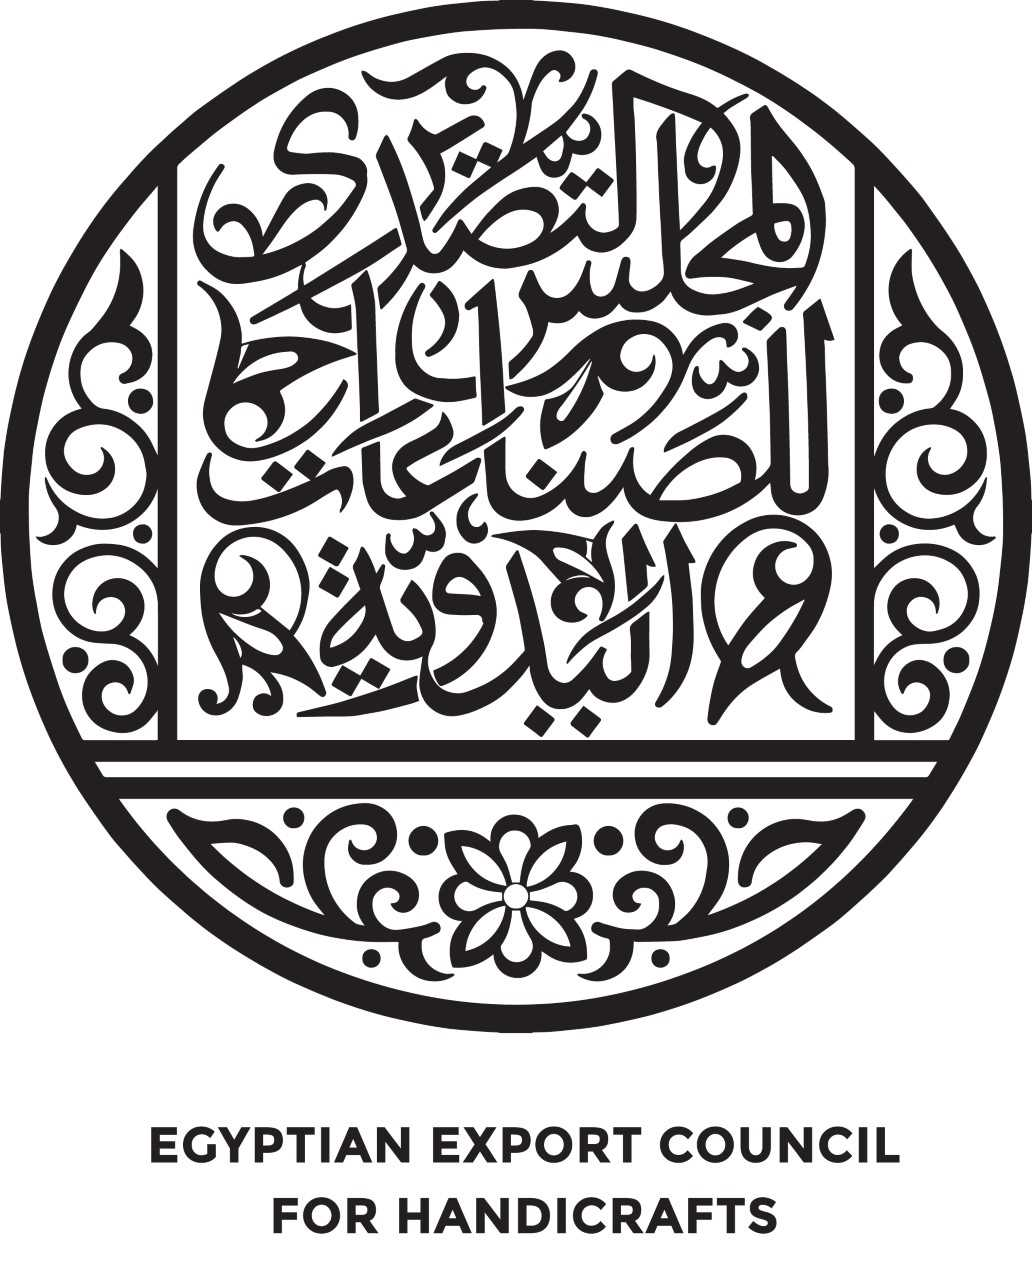 Egyptian Export Council For Handicrafts.